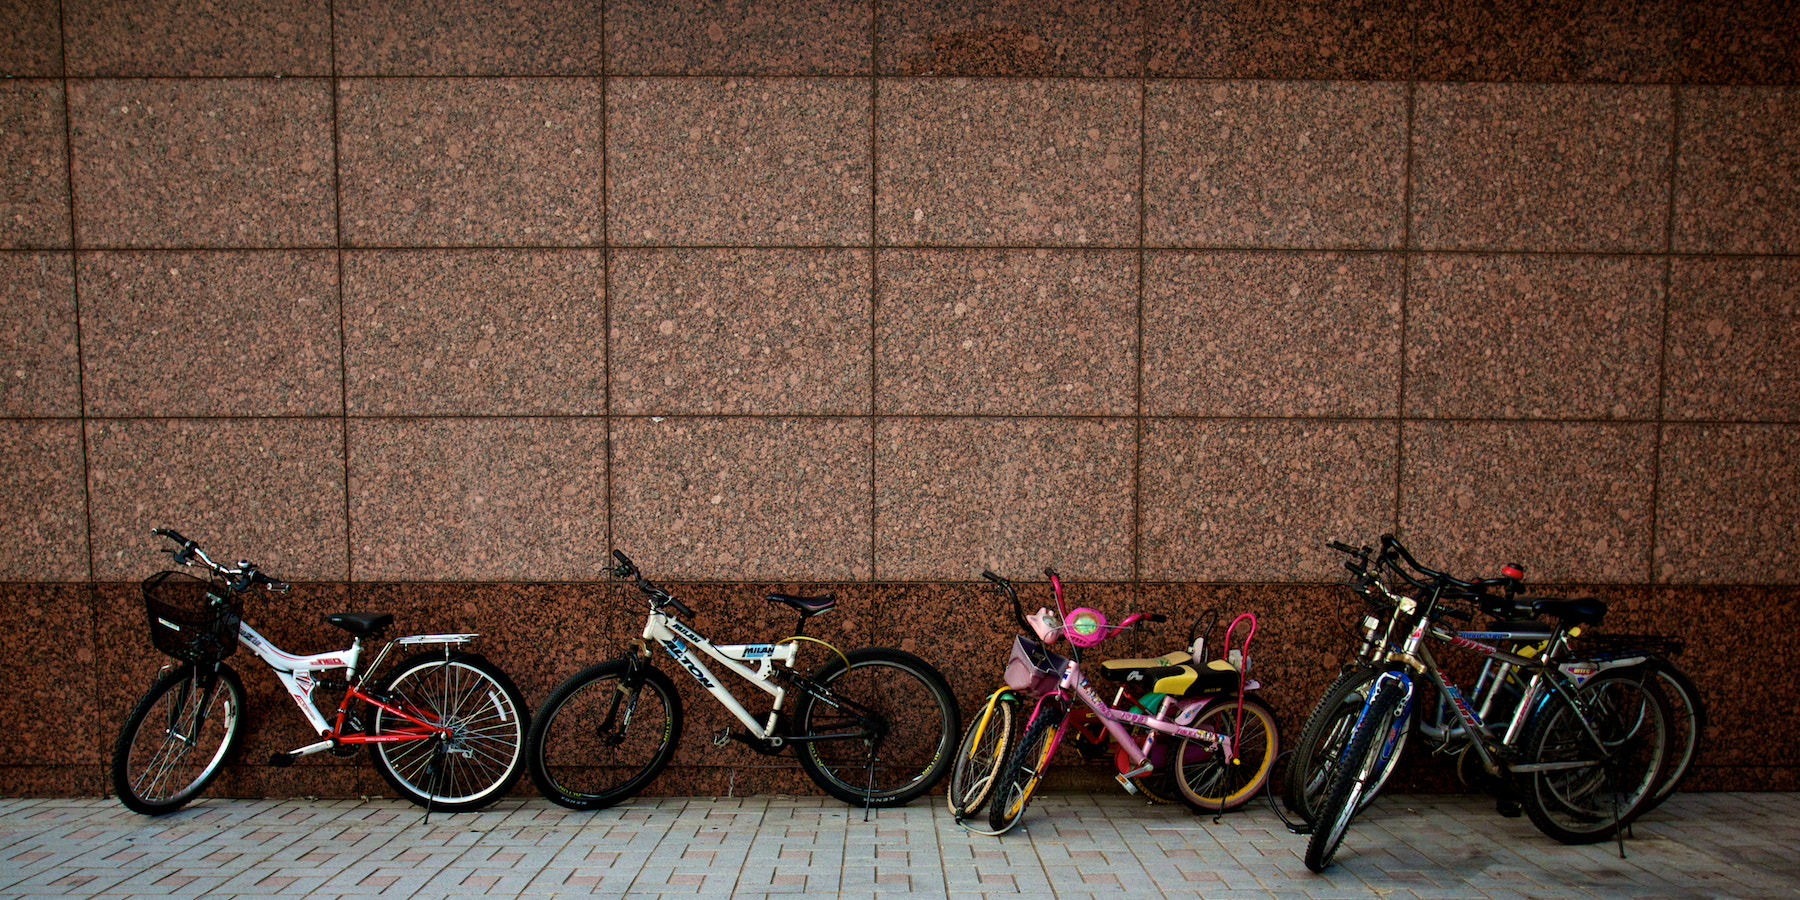 Photograph Bikes by Andy Mann on 500px